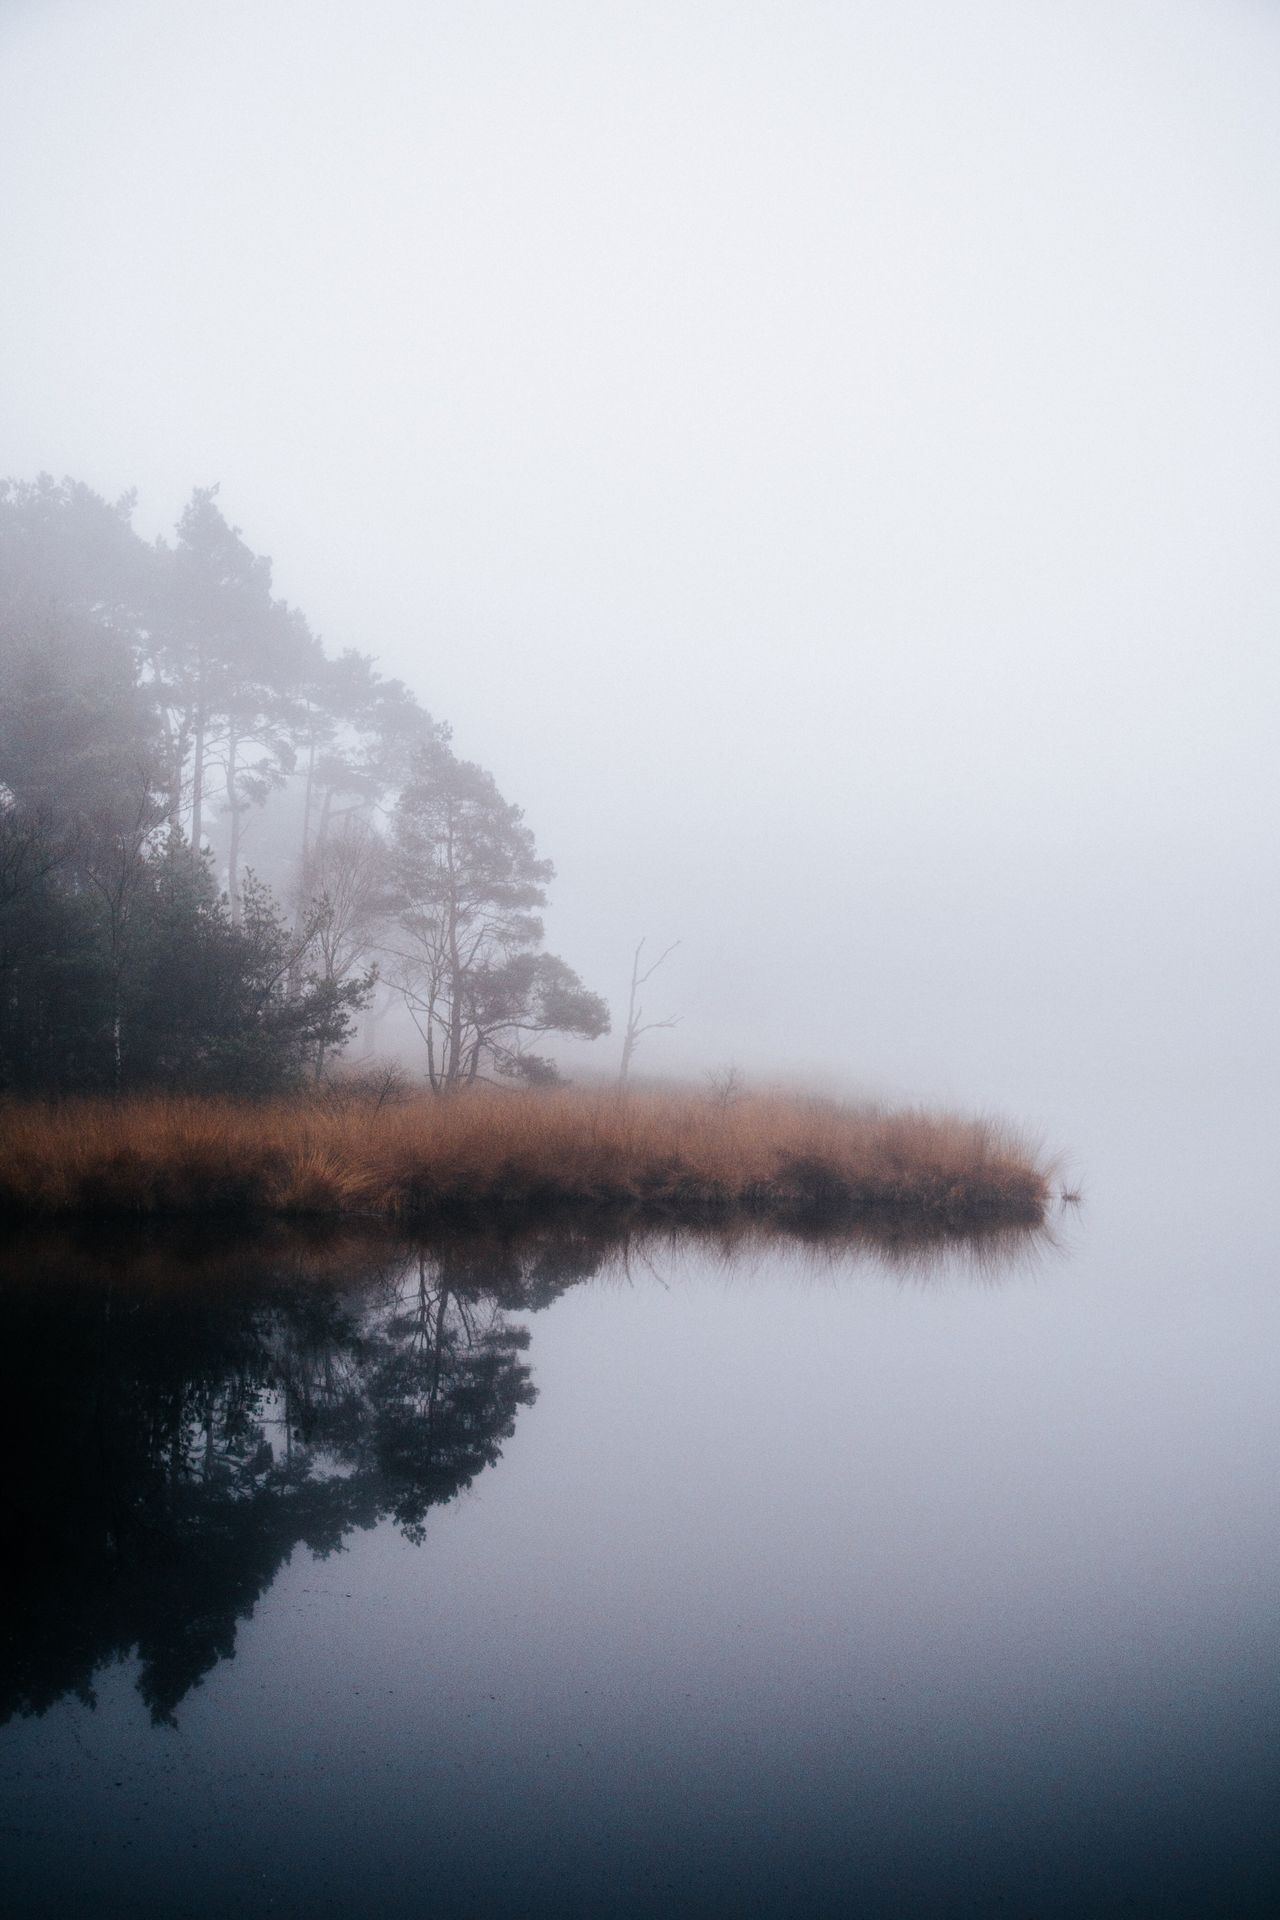 Nature Tranquility Fog Reflection Tranquil Scene Tree Water Hazy  Scenics Beauty In Nature Mist Sky No People Landscape Outdoors Growth Day Hello World EyeEm Nature Lover Nature_collection The Week Of Eyeem Beautiful Check This Out Lake Beauty In Nature